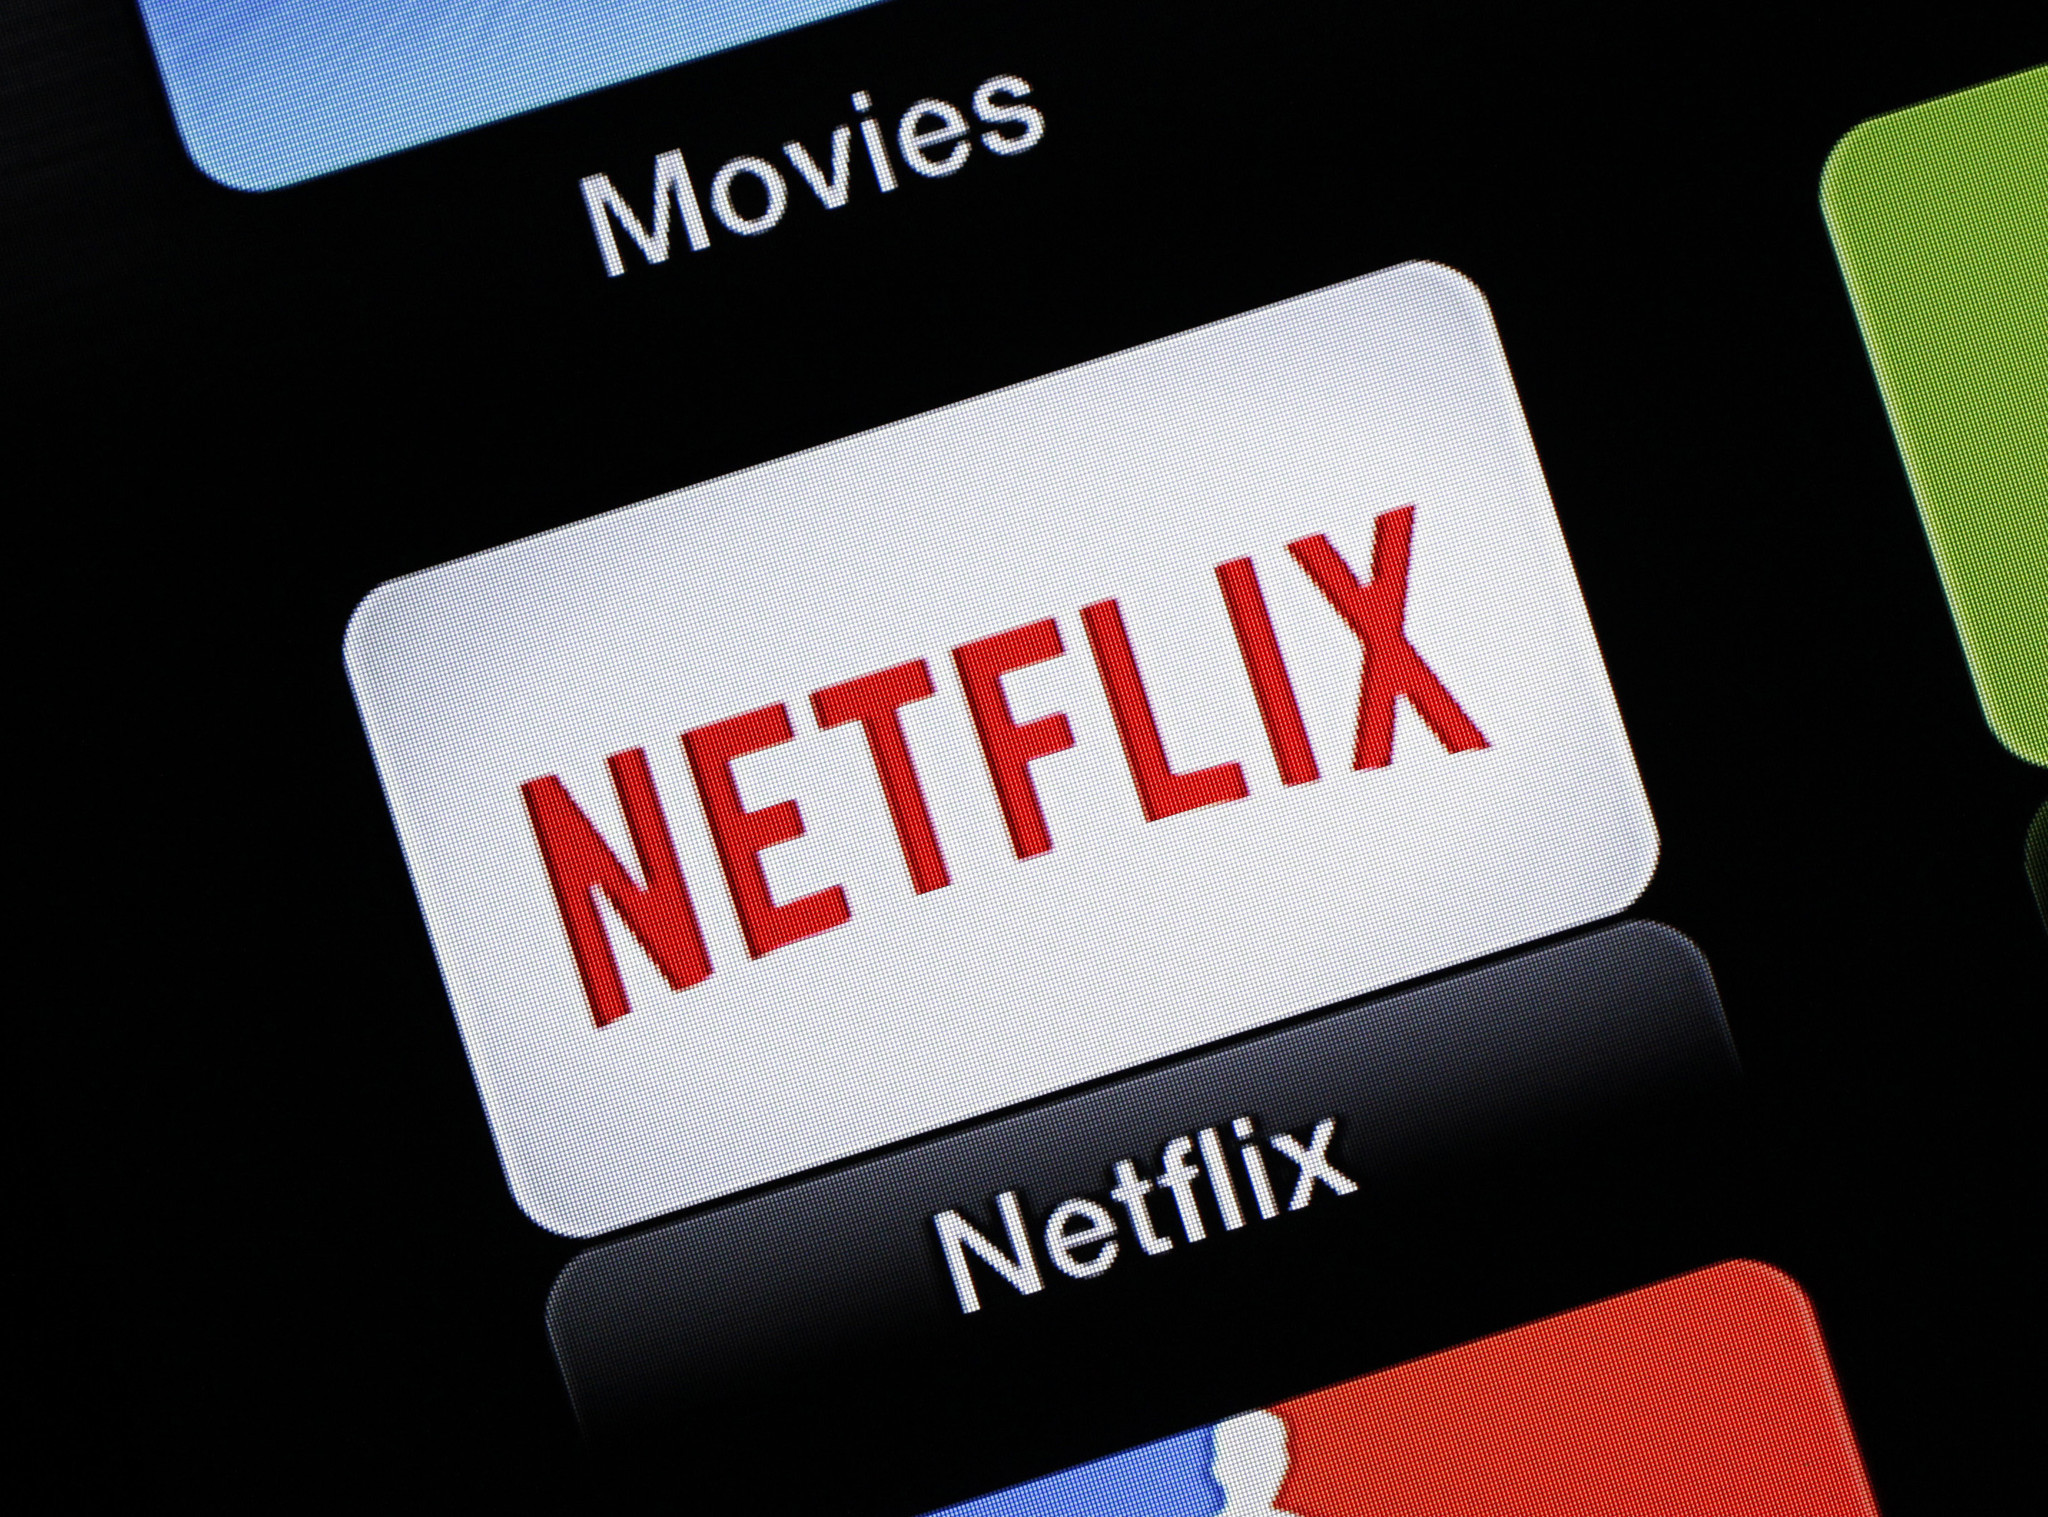 Netflix receives most downloads, YouTube Kids leads in hours watched in early 2020 as streaming soars amid coronavirus pandemic